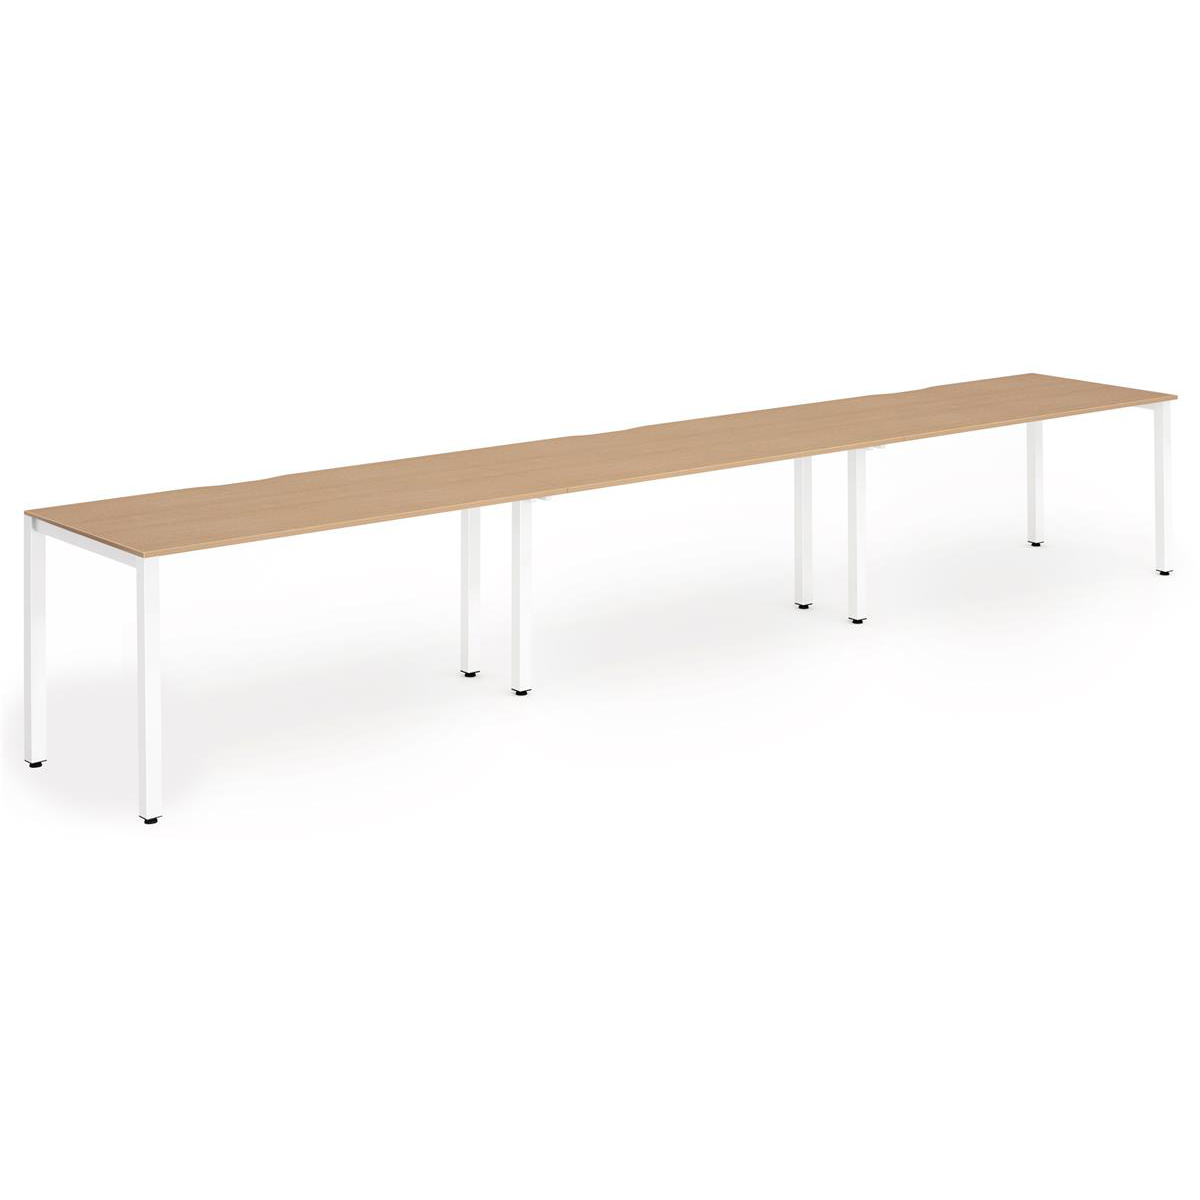 Trexus Bench Desk 3 Person Side to Side Configuration White Leg 4800x800mm Oak Ref BE388